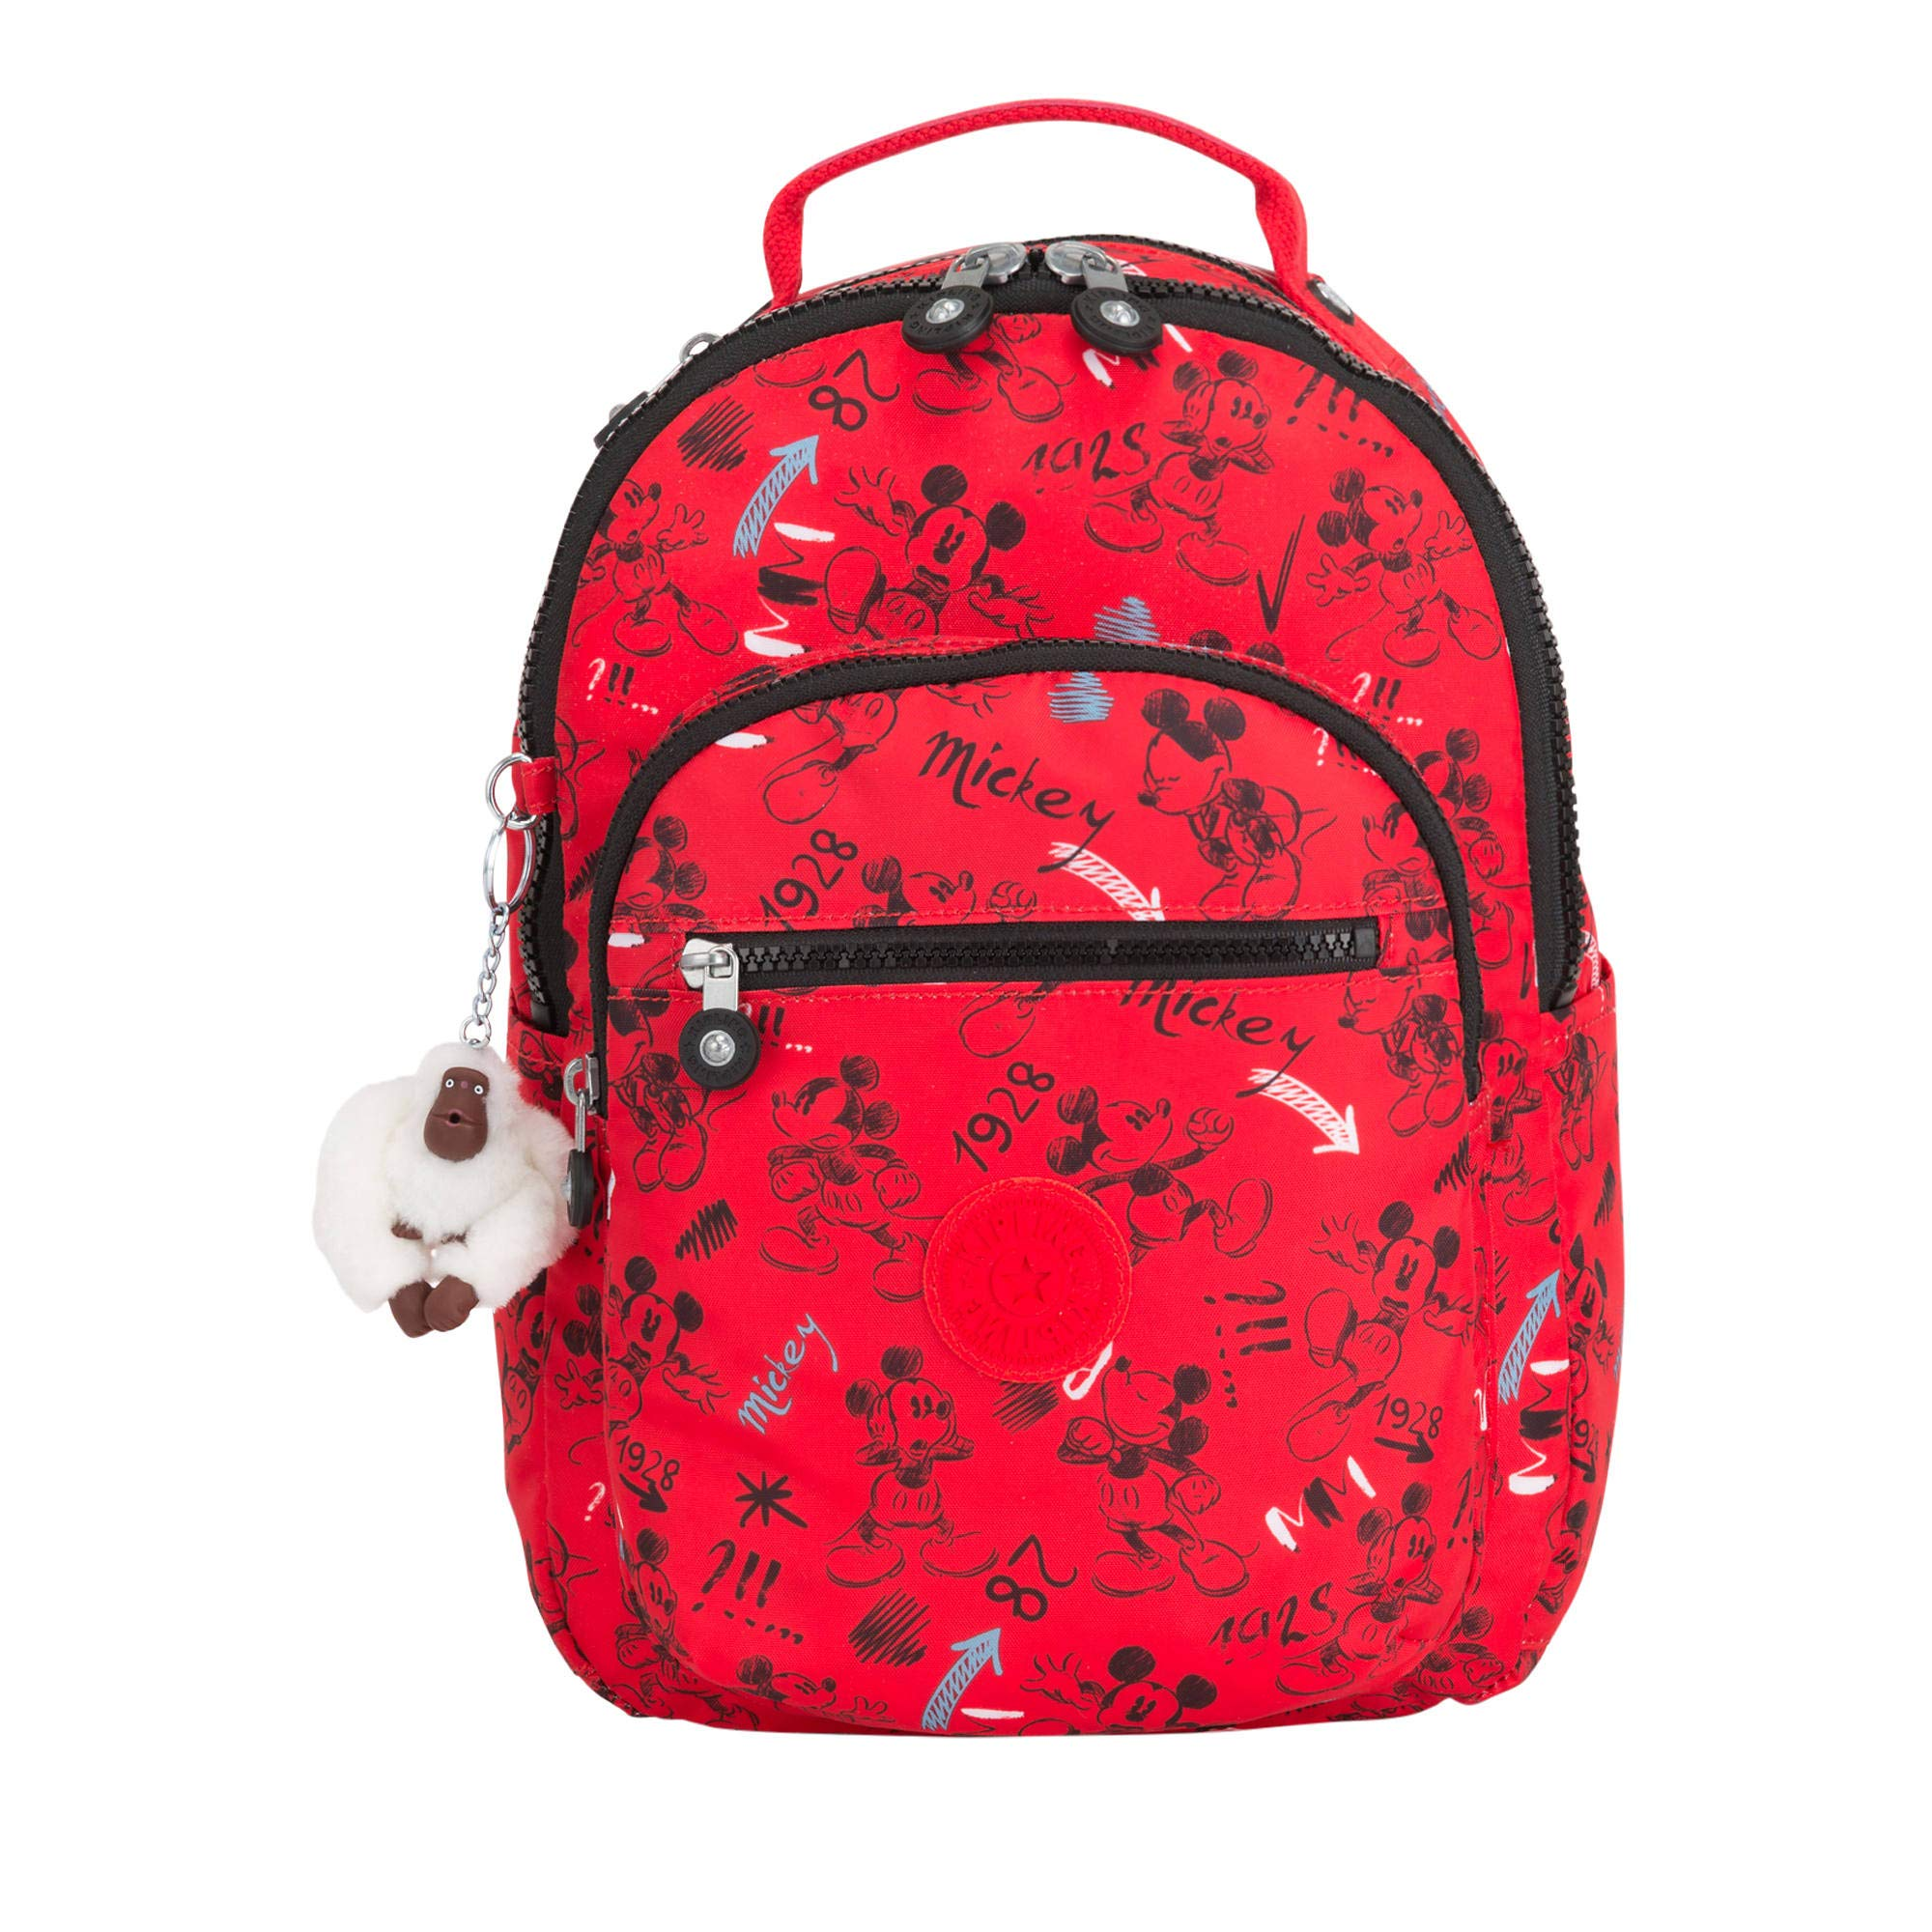 Kipling Disney's Minnie Mouse And Mickey Mouse Seoul Go Small Backpack One Size Sketch Red